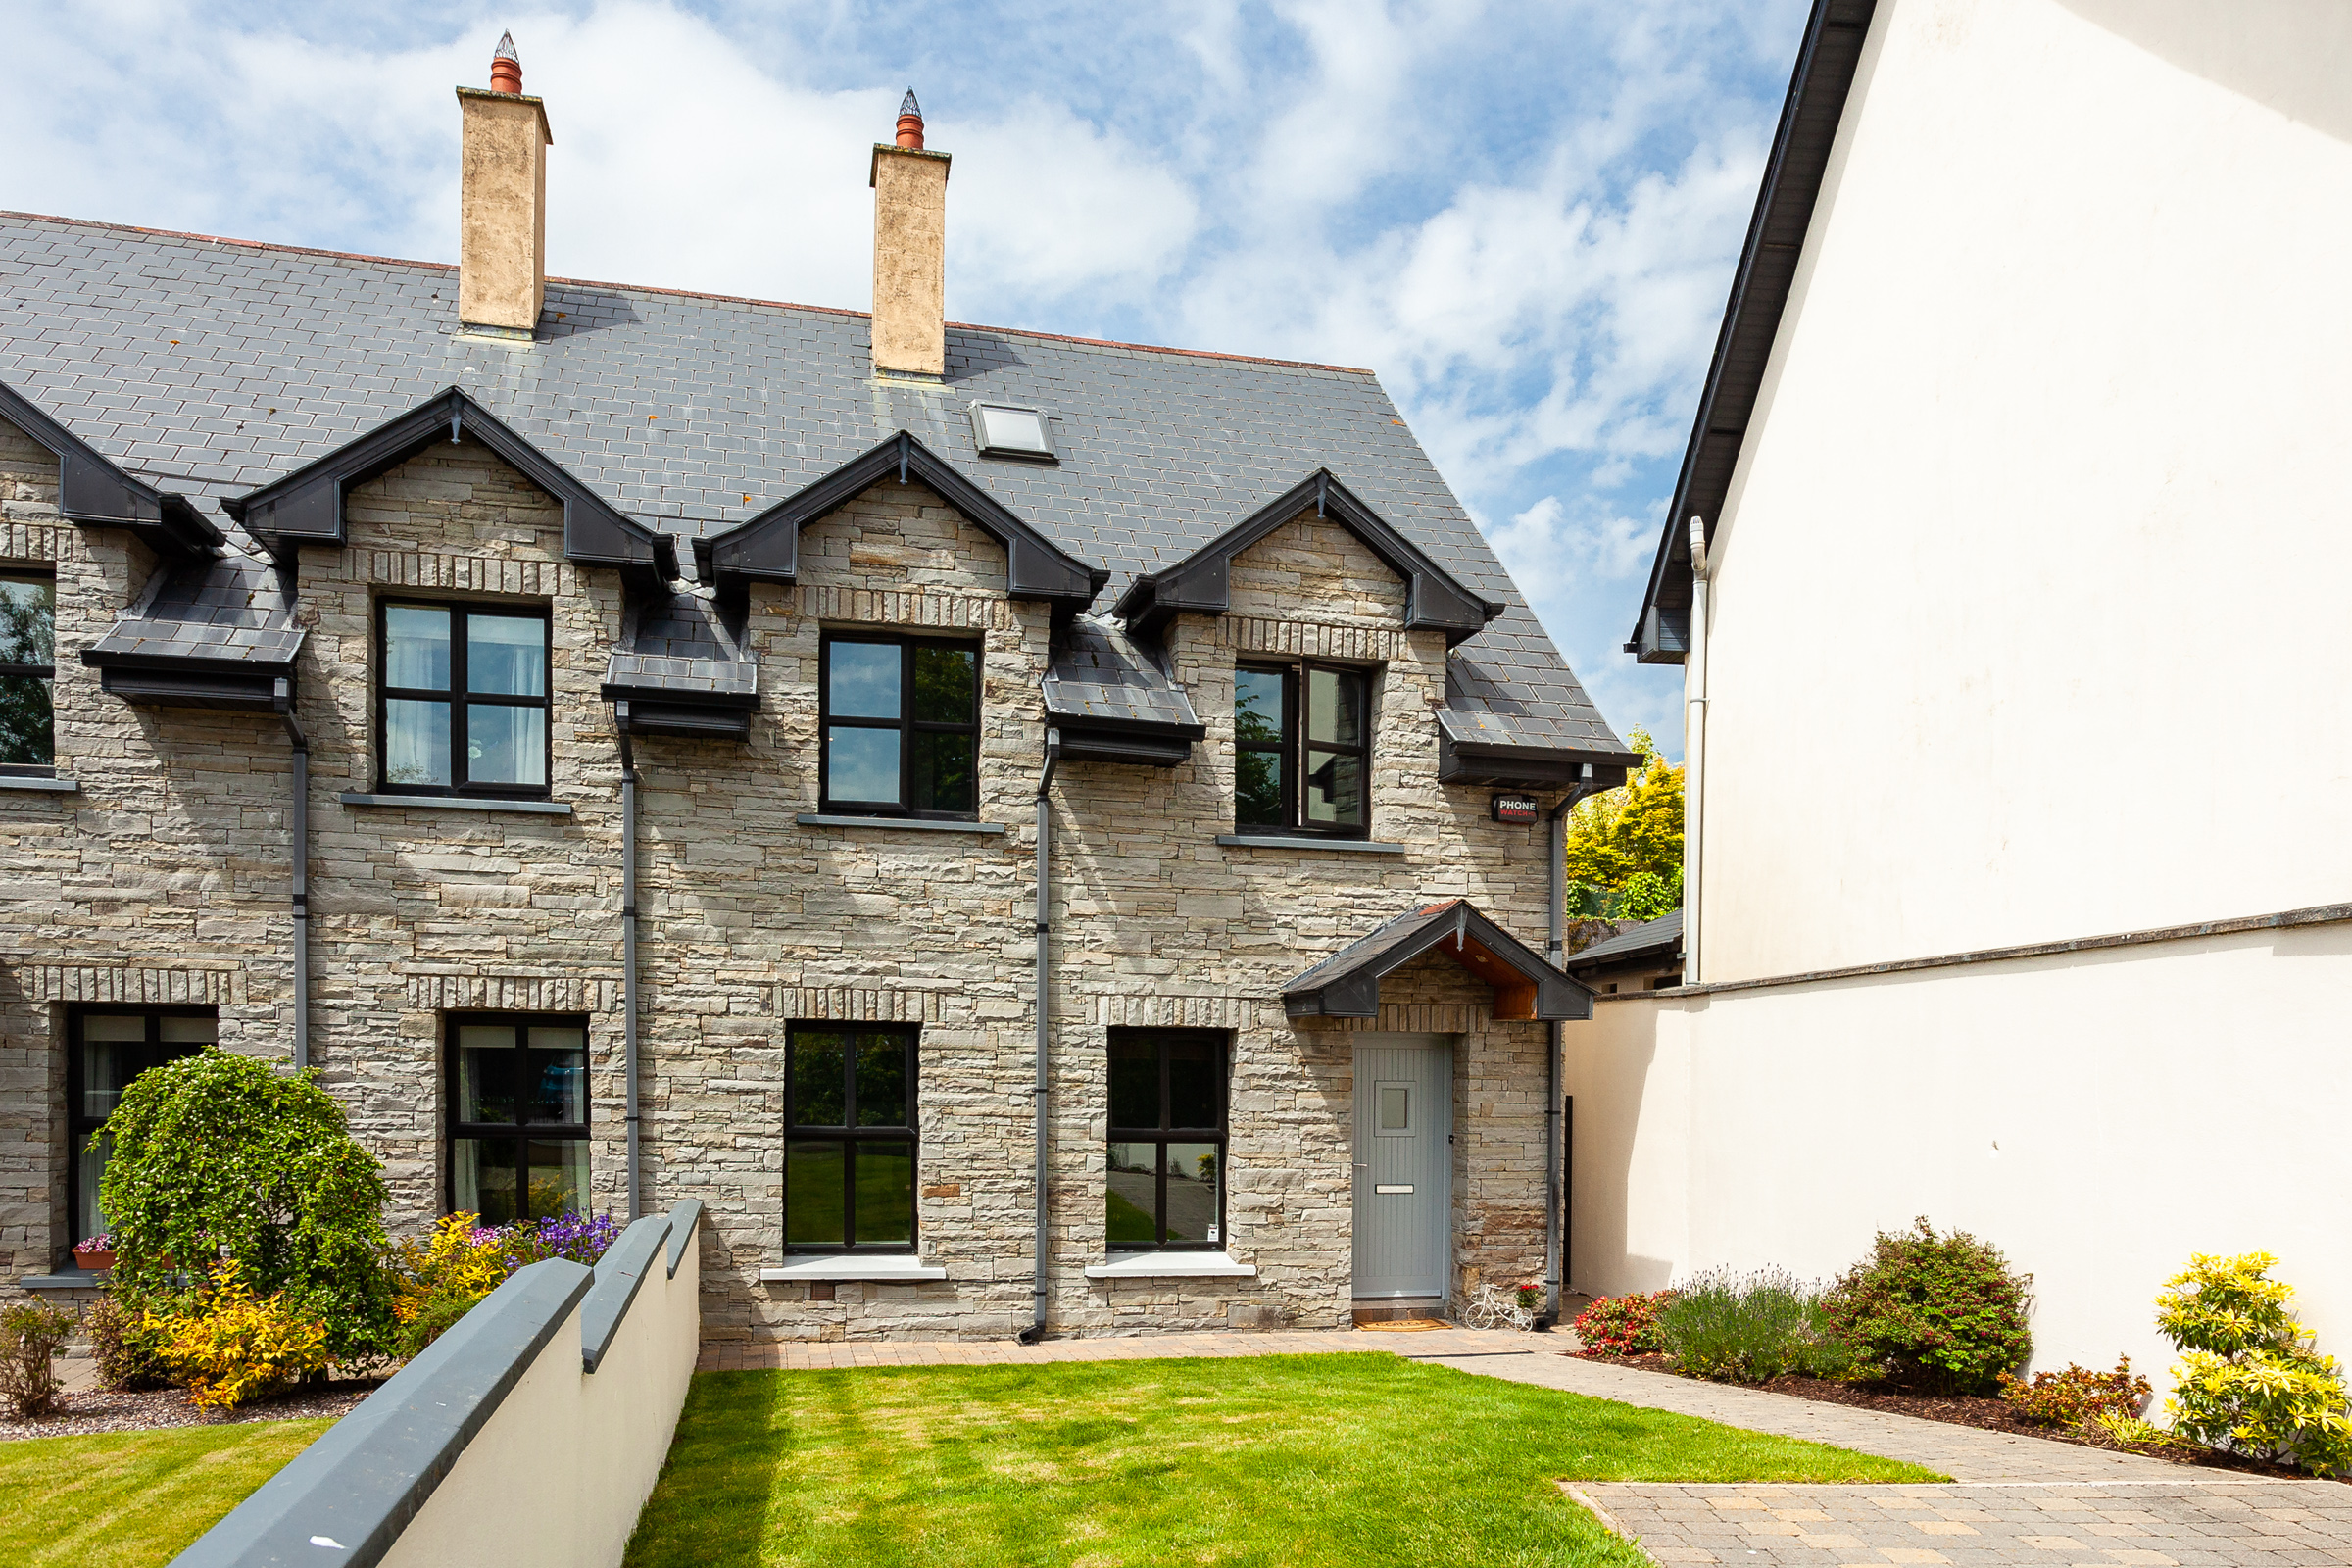 12, The Stables, Coolroe, Ballincollig, Co. Cork, P31 DD35